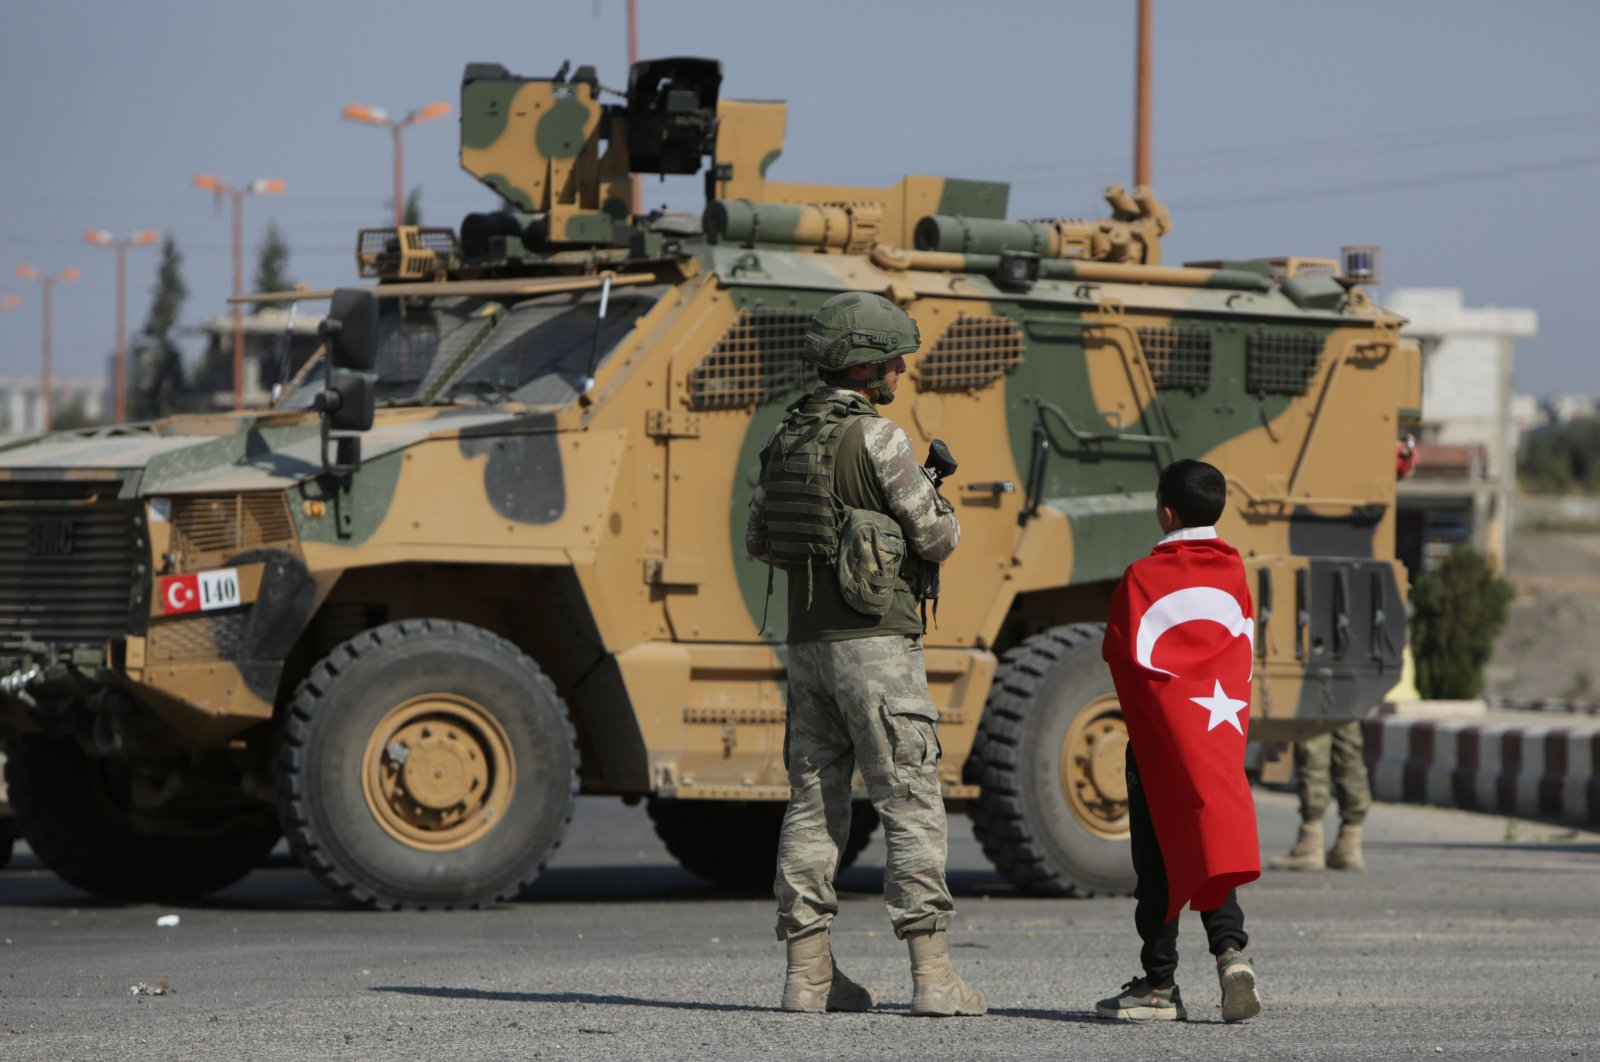 Turkish soldiers patrol the northern Syrian town of Tal Abyad, on the border between Syria and Turkey, Oct. 23, 2019. (AFP Photo)